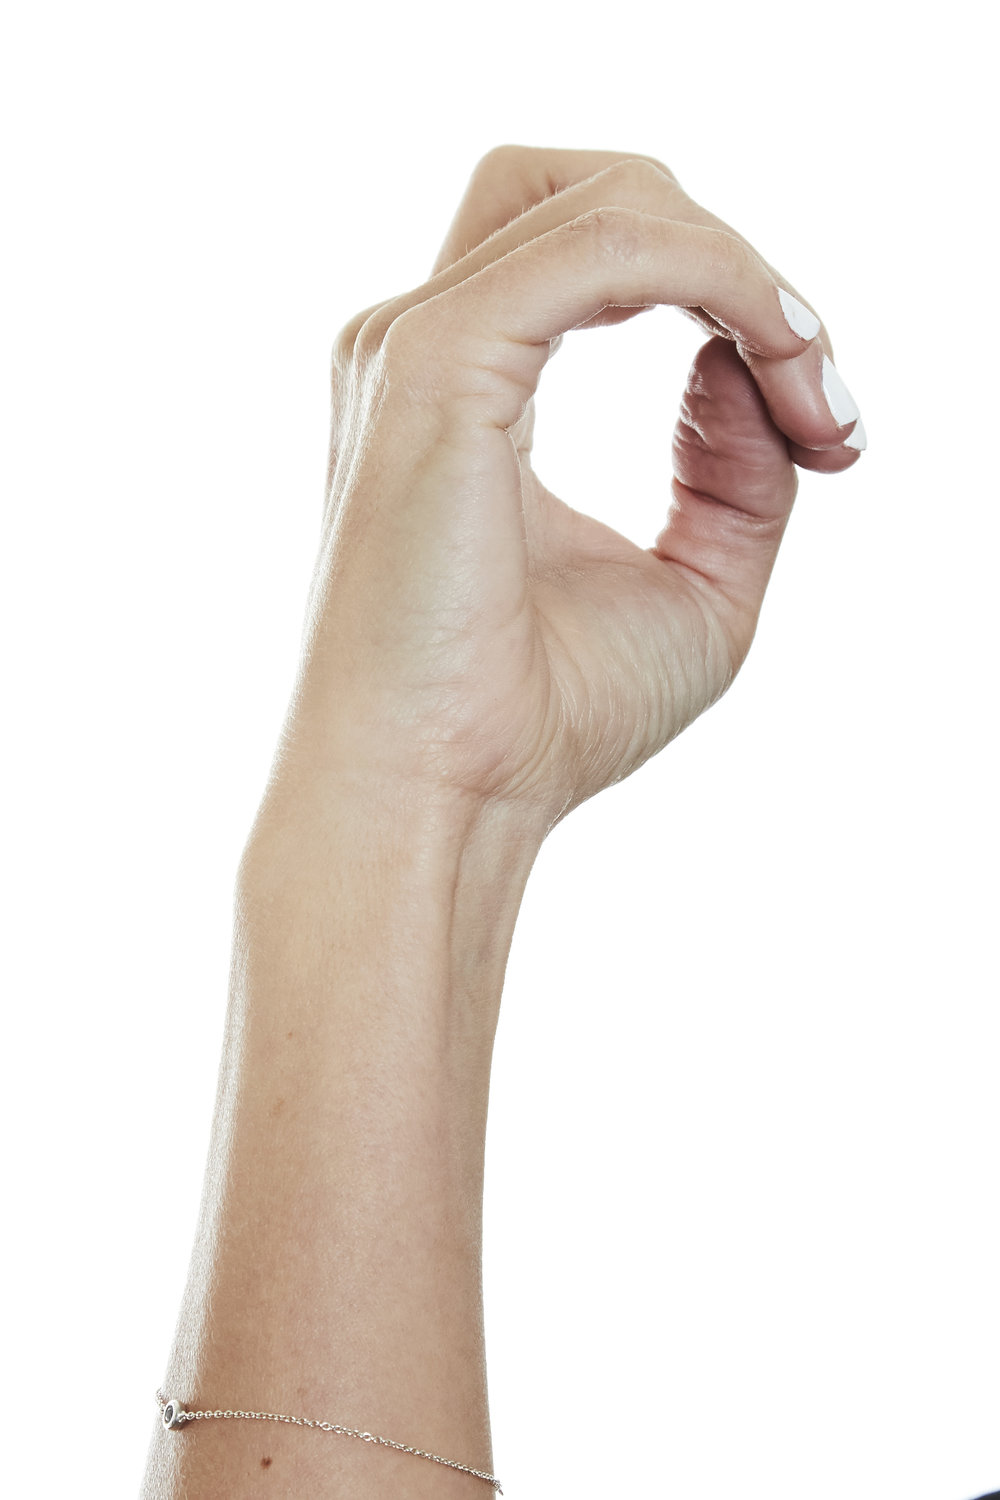 The thumb is curved into a C shape -